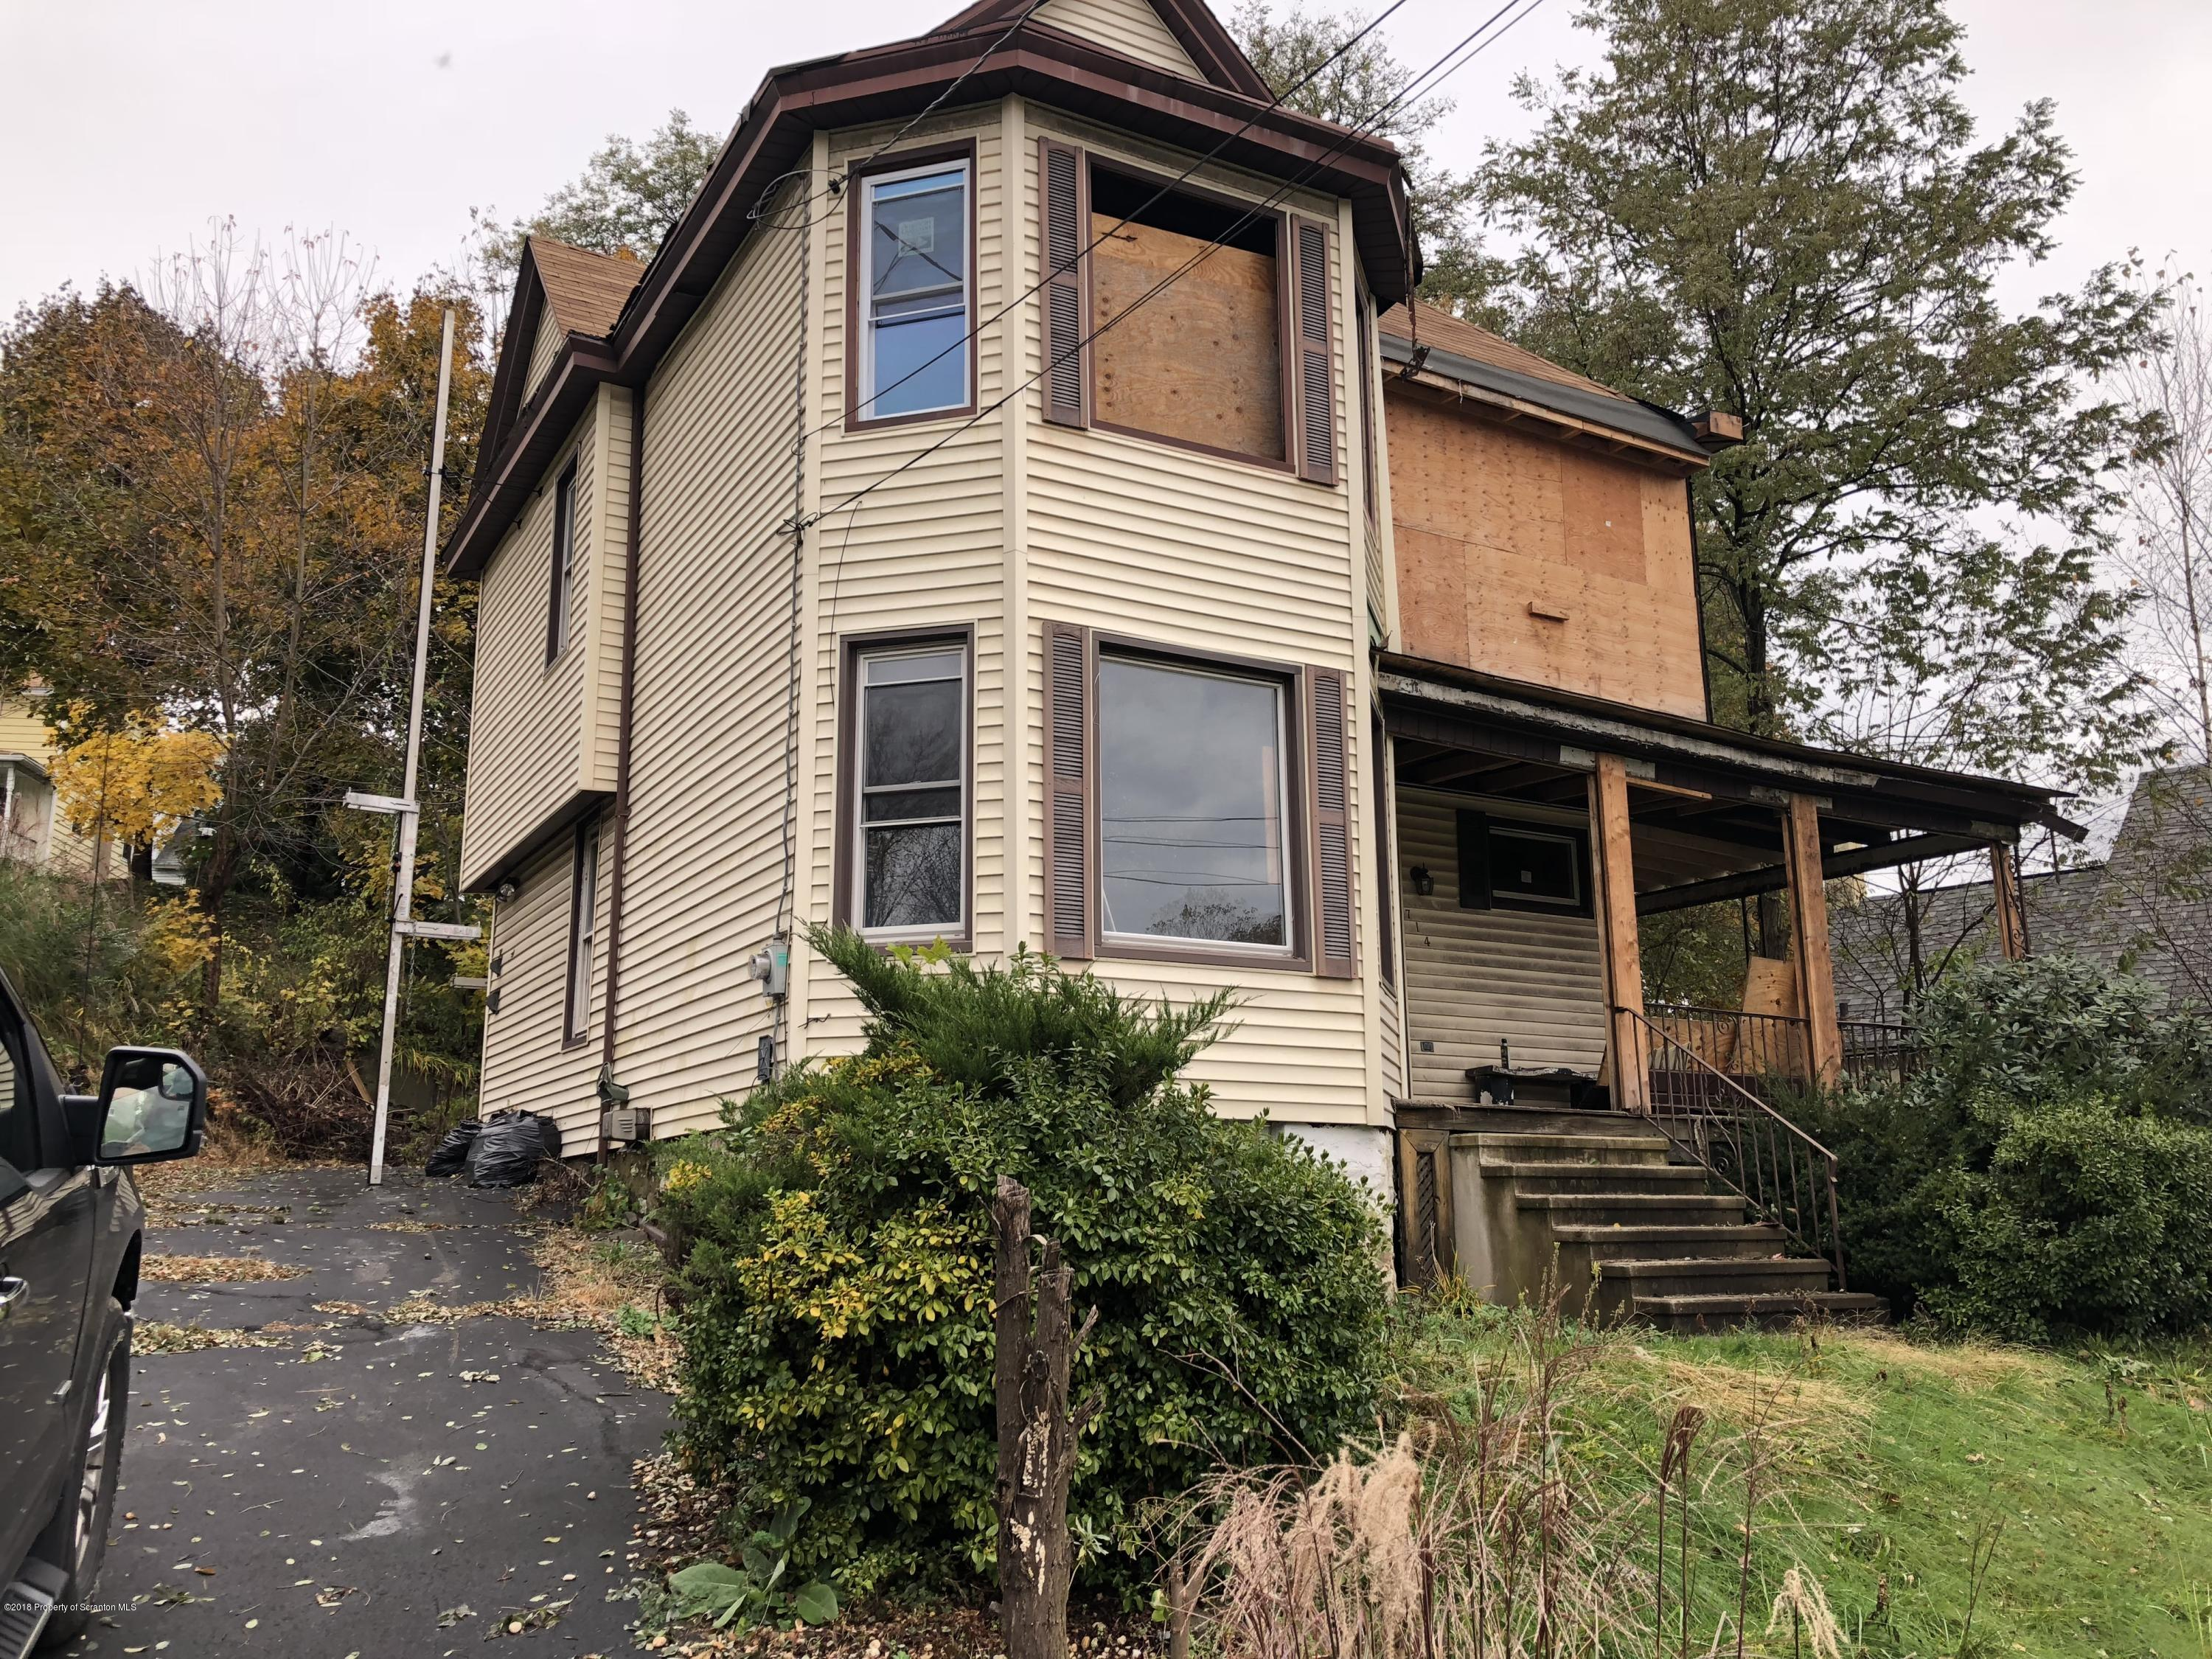 714 Valley Ave, Olyphant, Pennsylvania 18447, 3 Bedrooms Bedrooms, 6 Rooms Rooms,1 BathroomBathrooms,Single Family,For Sale,Valley,18-5200